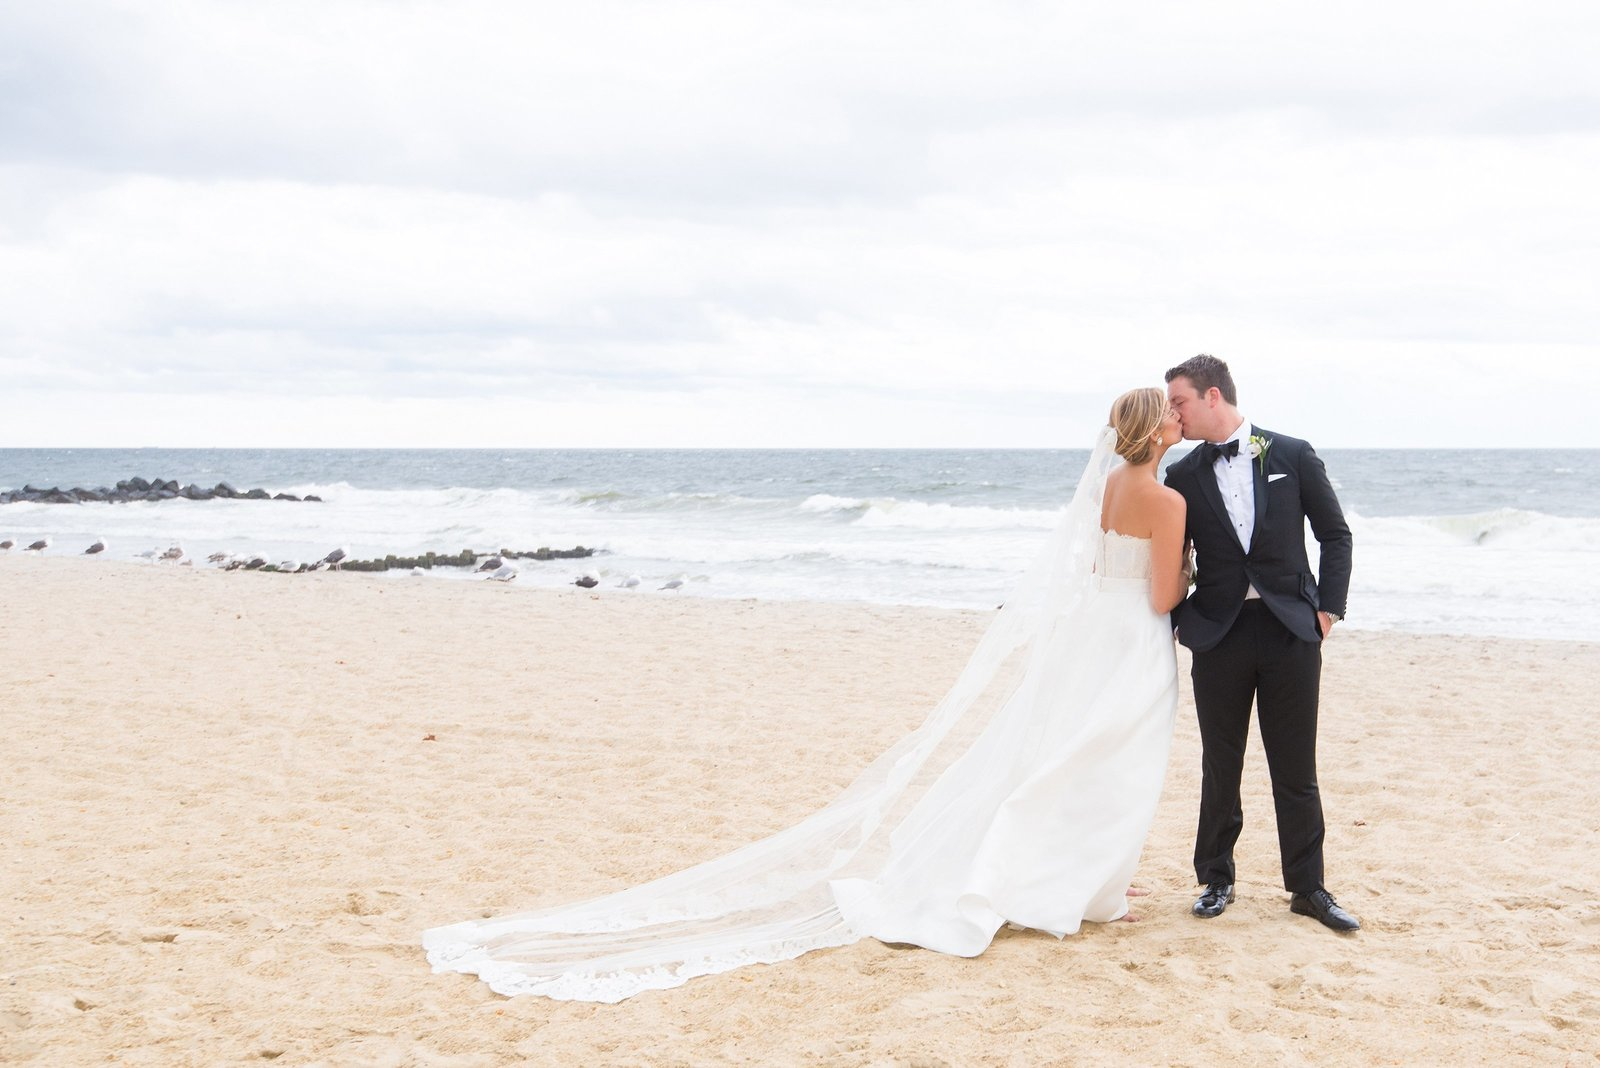 Spring Lake Bath and Tennis Club Bride and Groom Kissing on Beach Photo